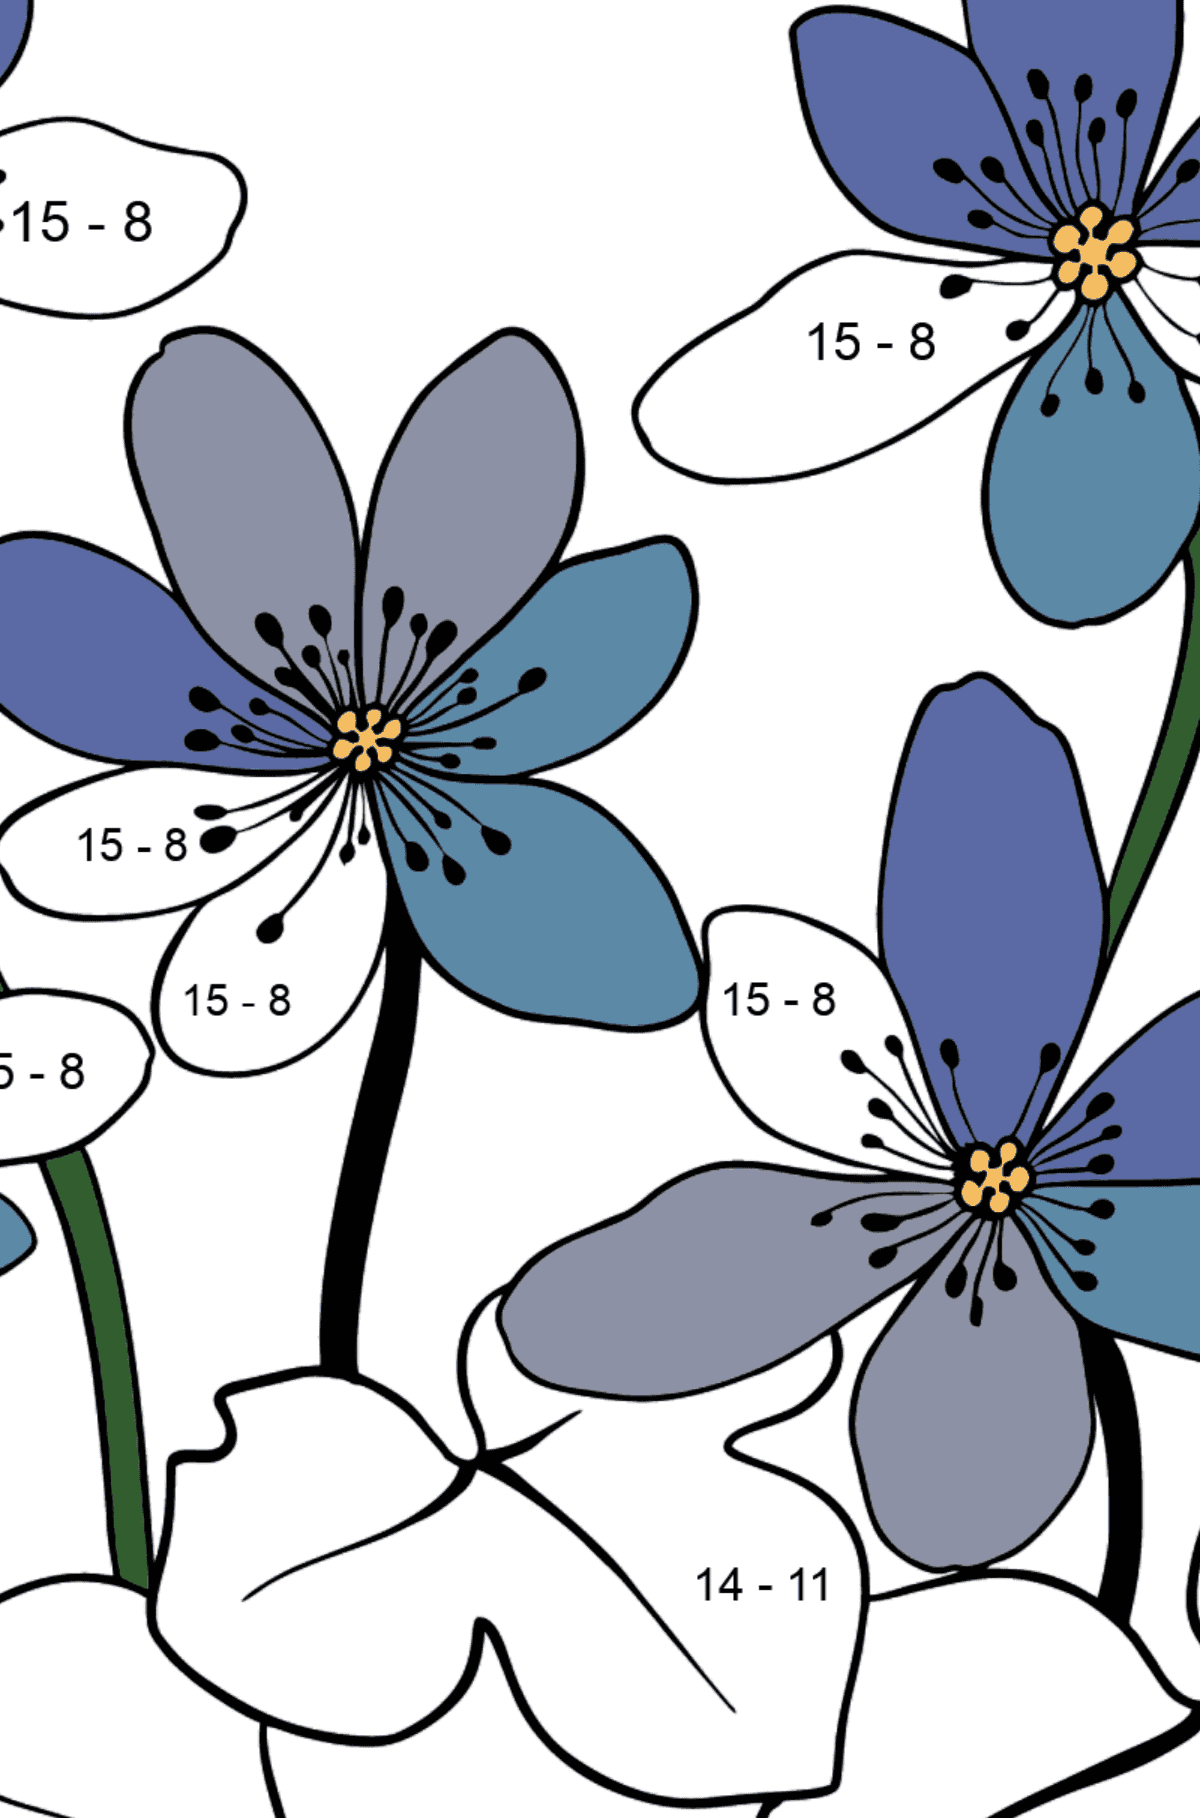 Flower Coloring Page - A Hepatica with Blue Petals - Math Coloring - Subtraction for Kids